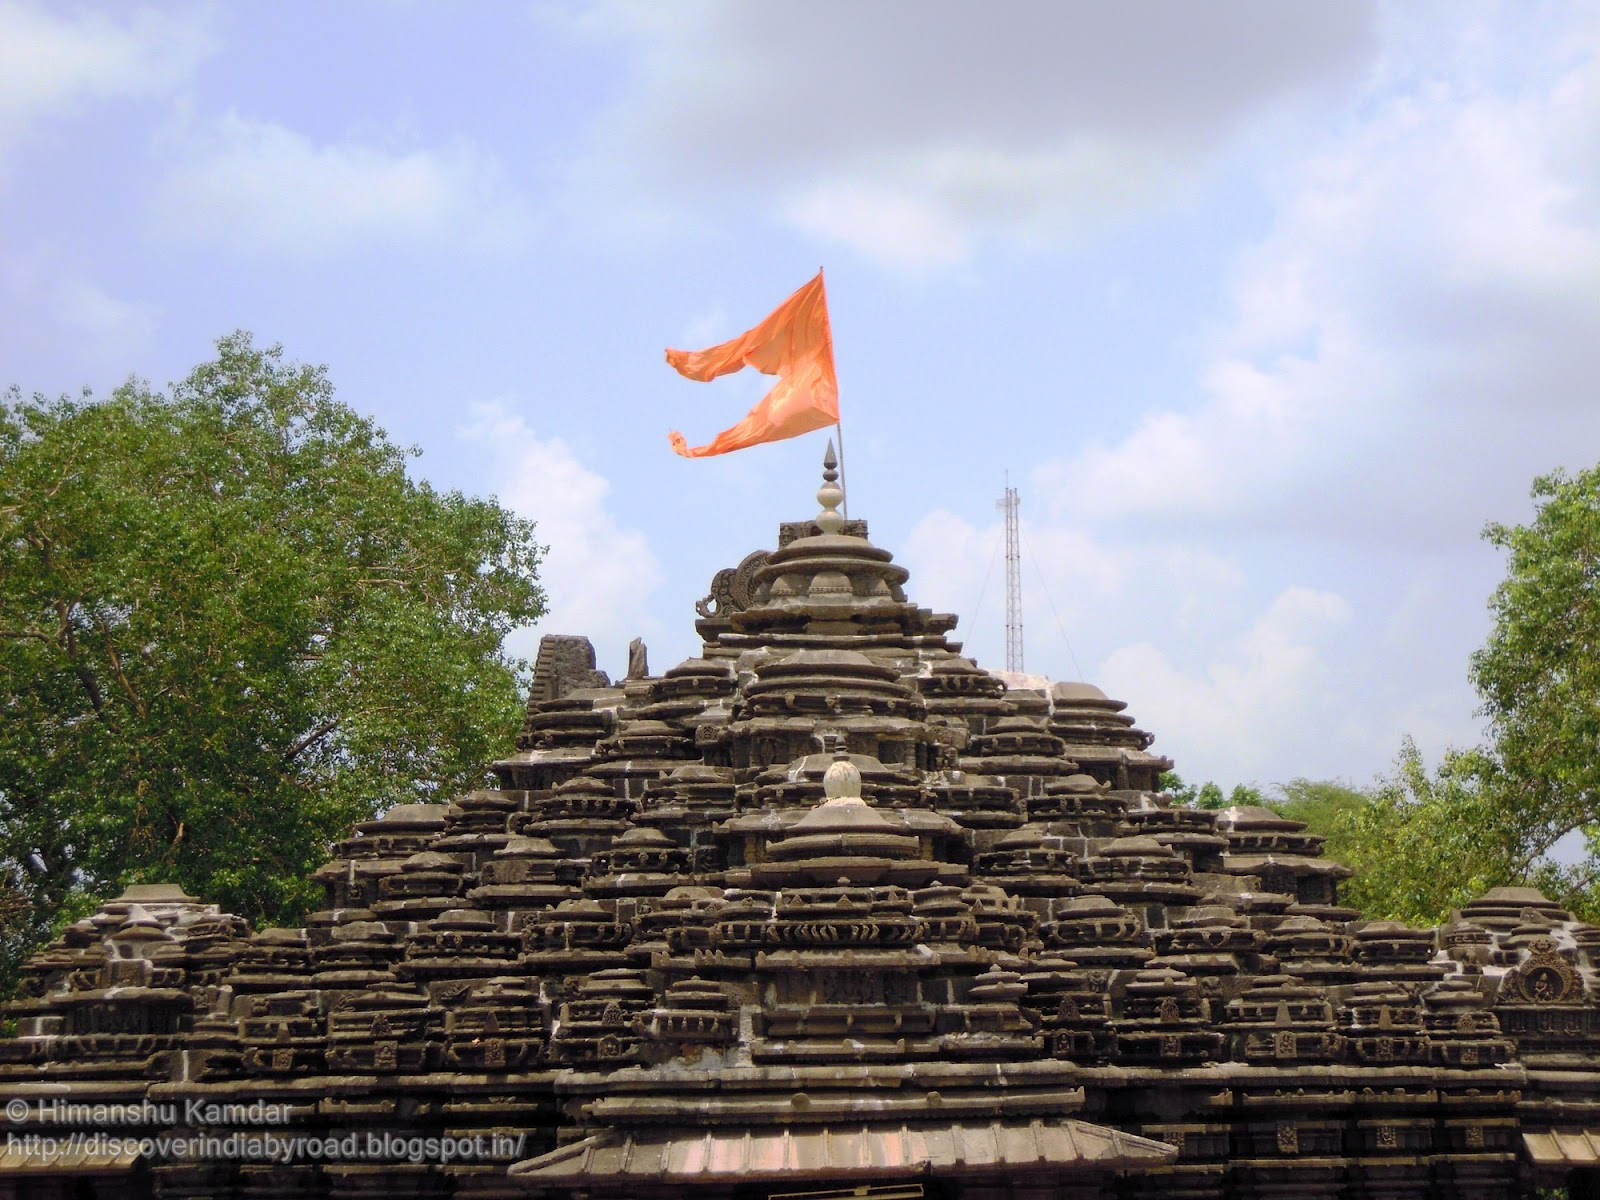 Discover India: Ancient Shiva Temple at Ambernath